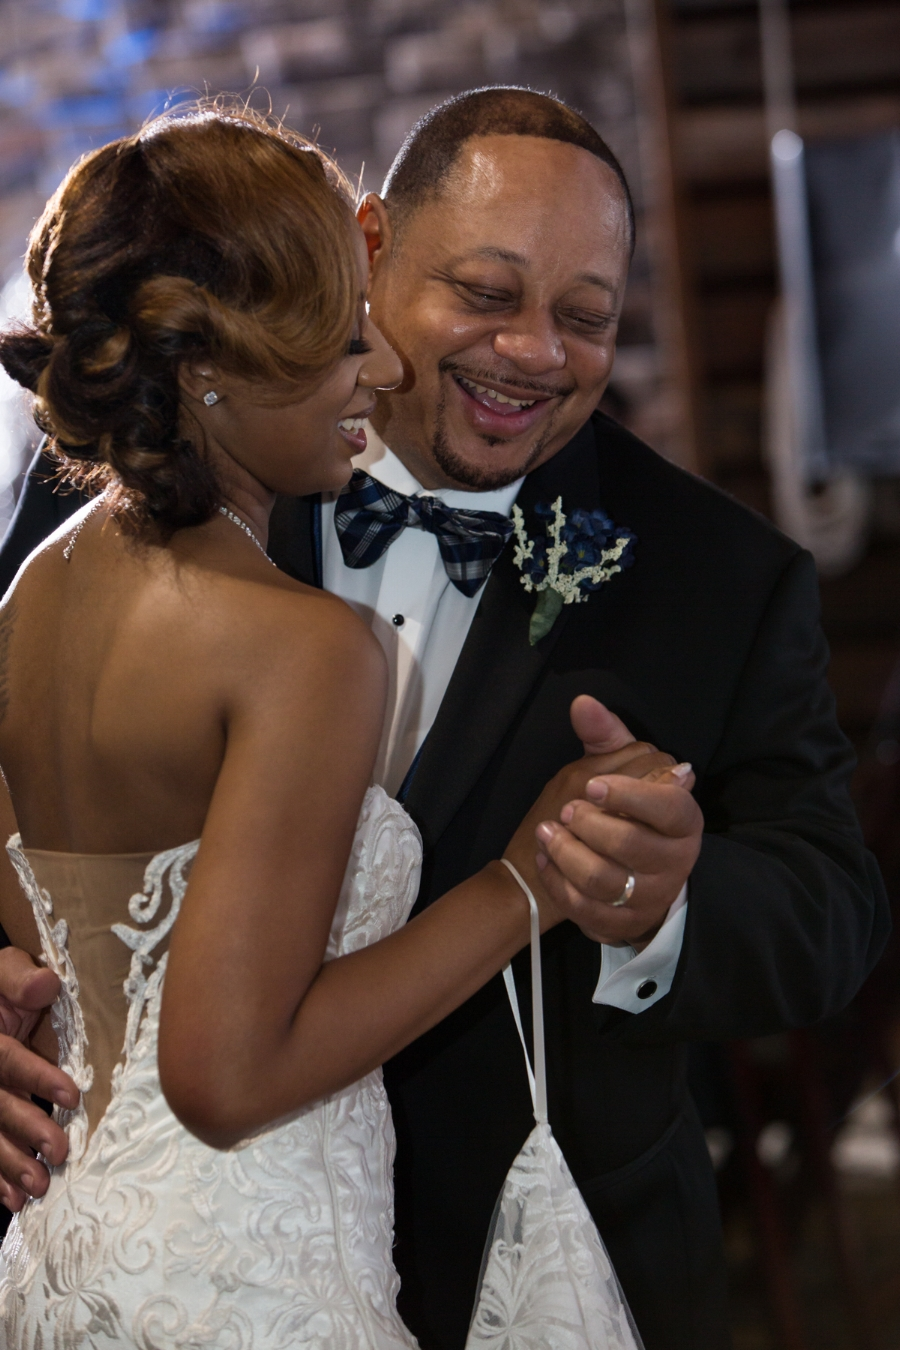 father-and-daugher-wedding-dance-the-lodge-nashville.jpg